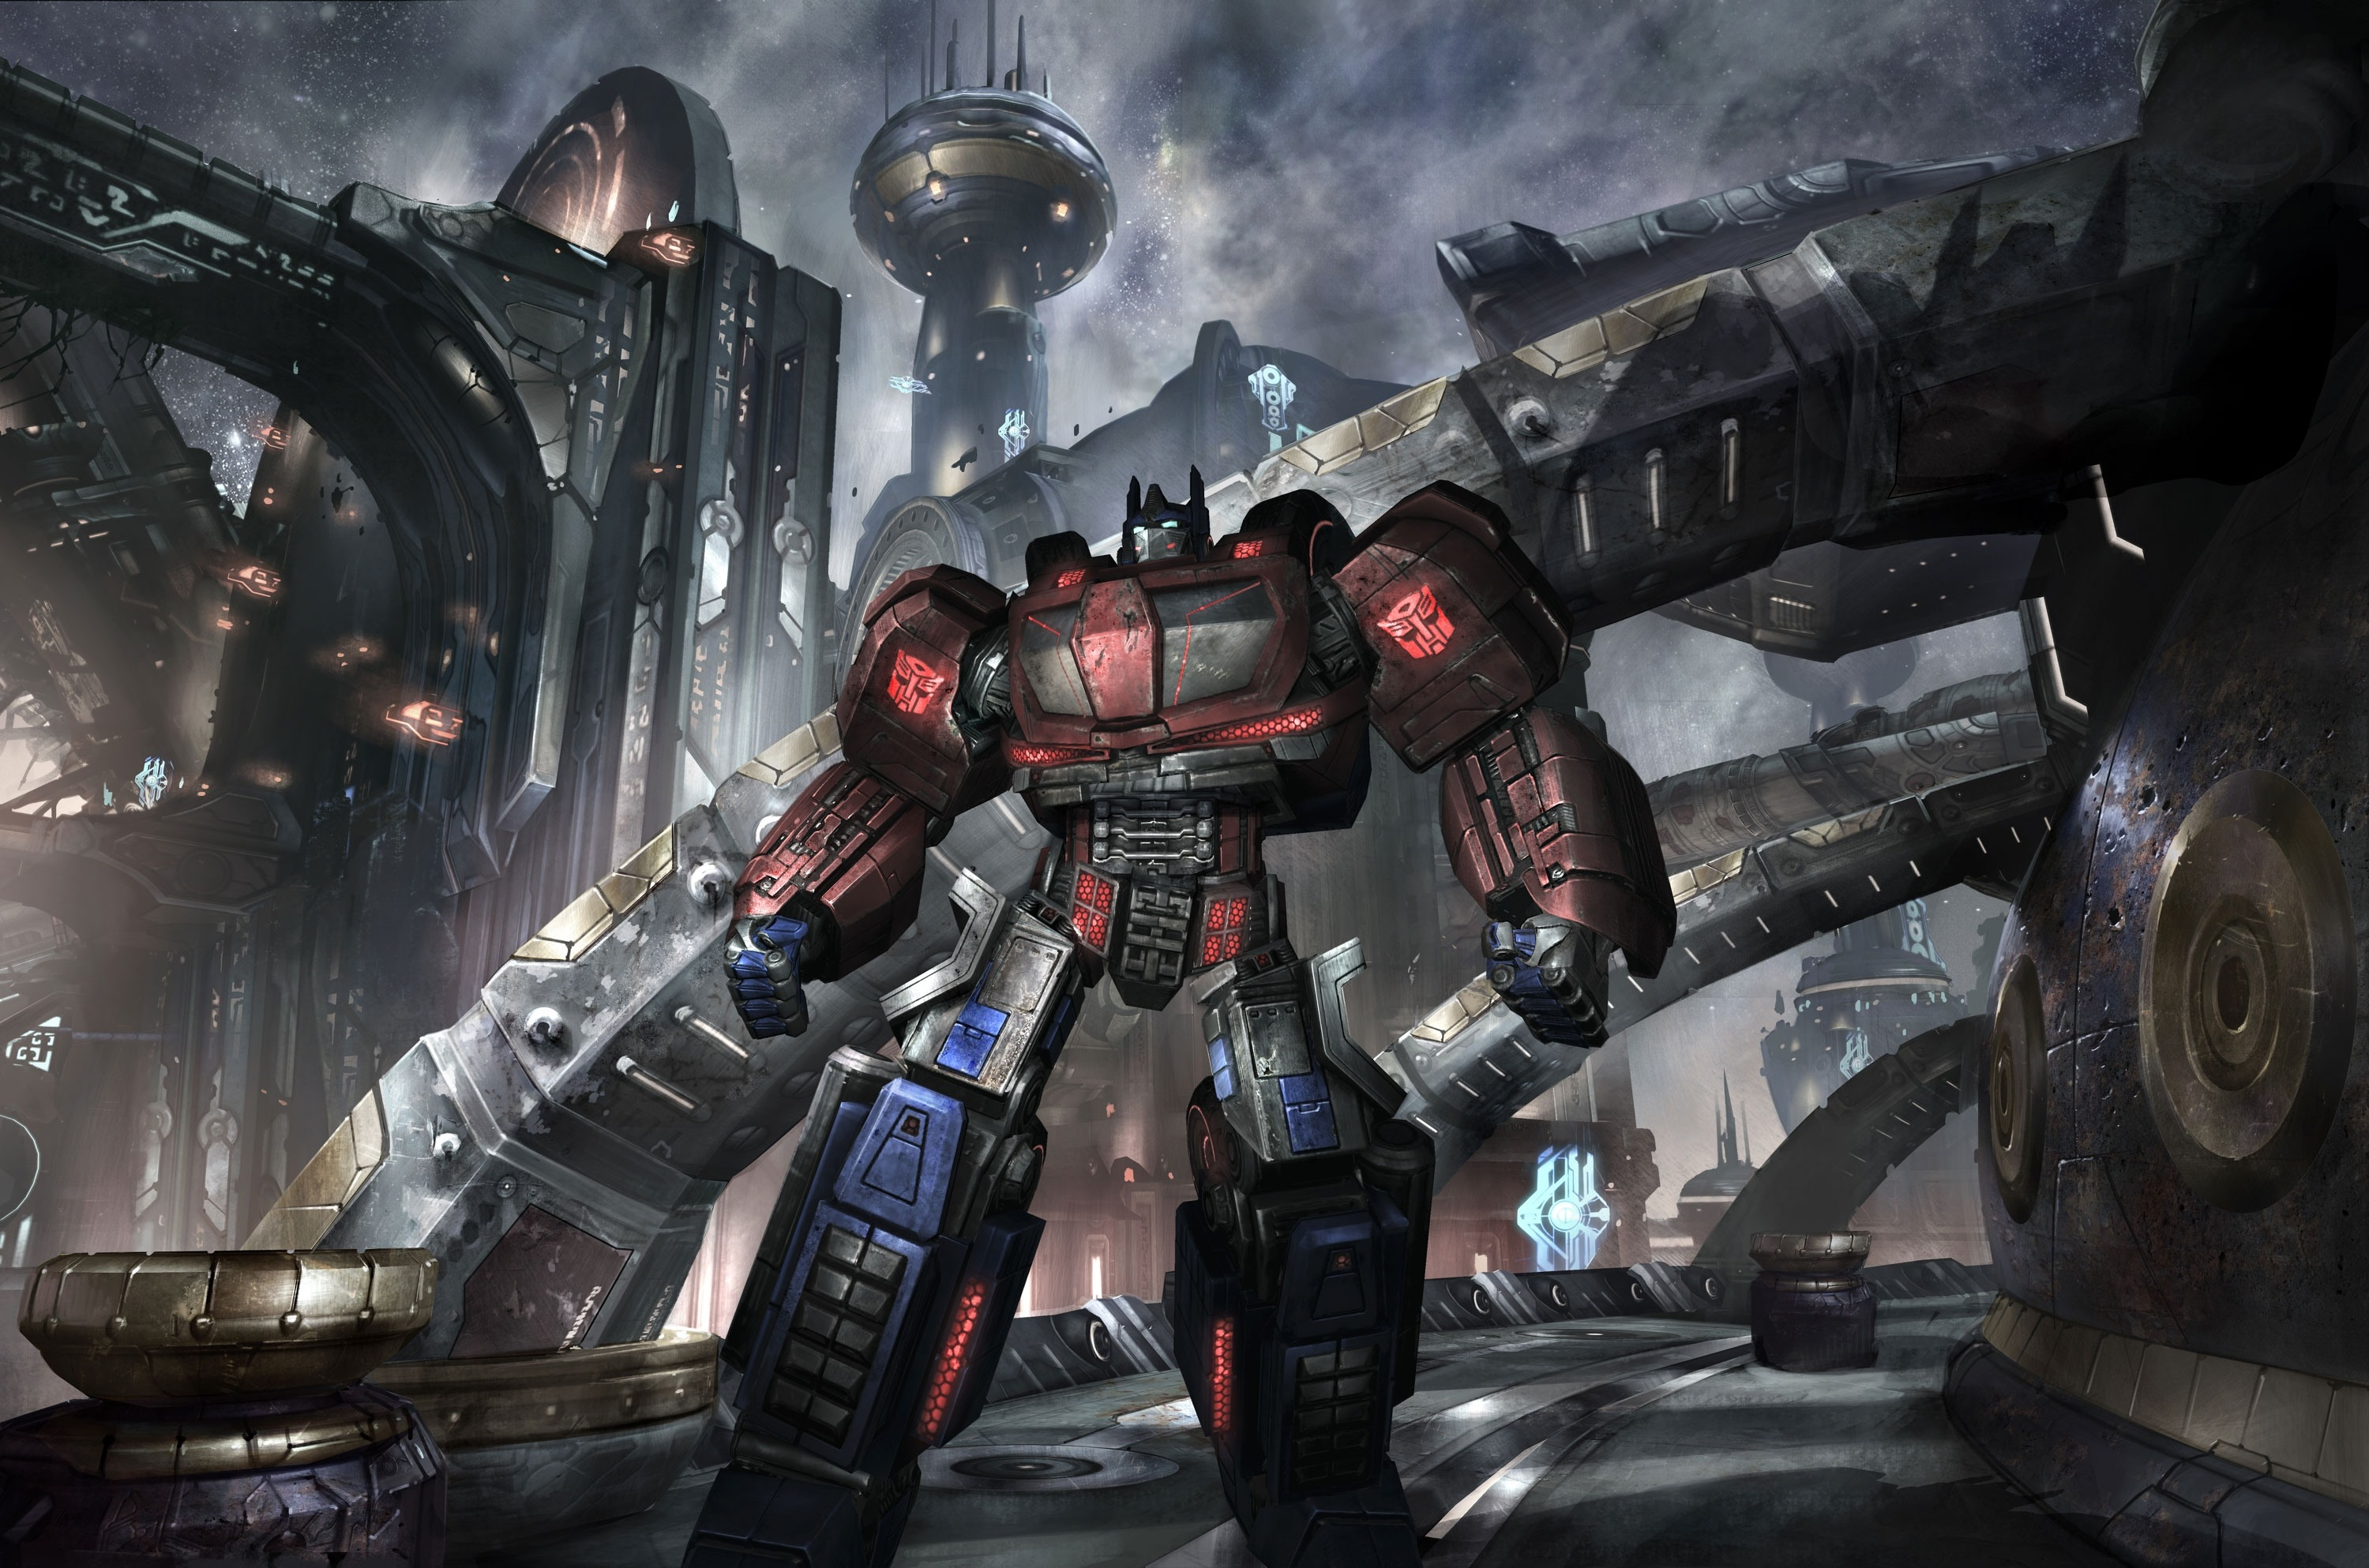 Transformers War For Cybertron Optimus Prime Wallpaper